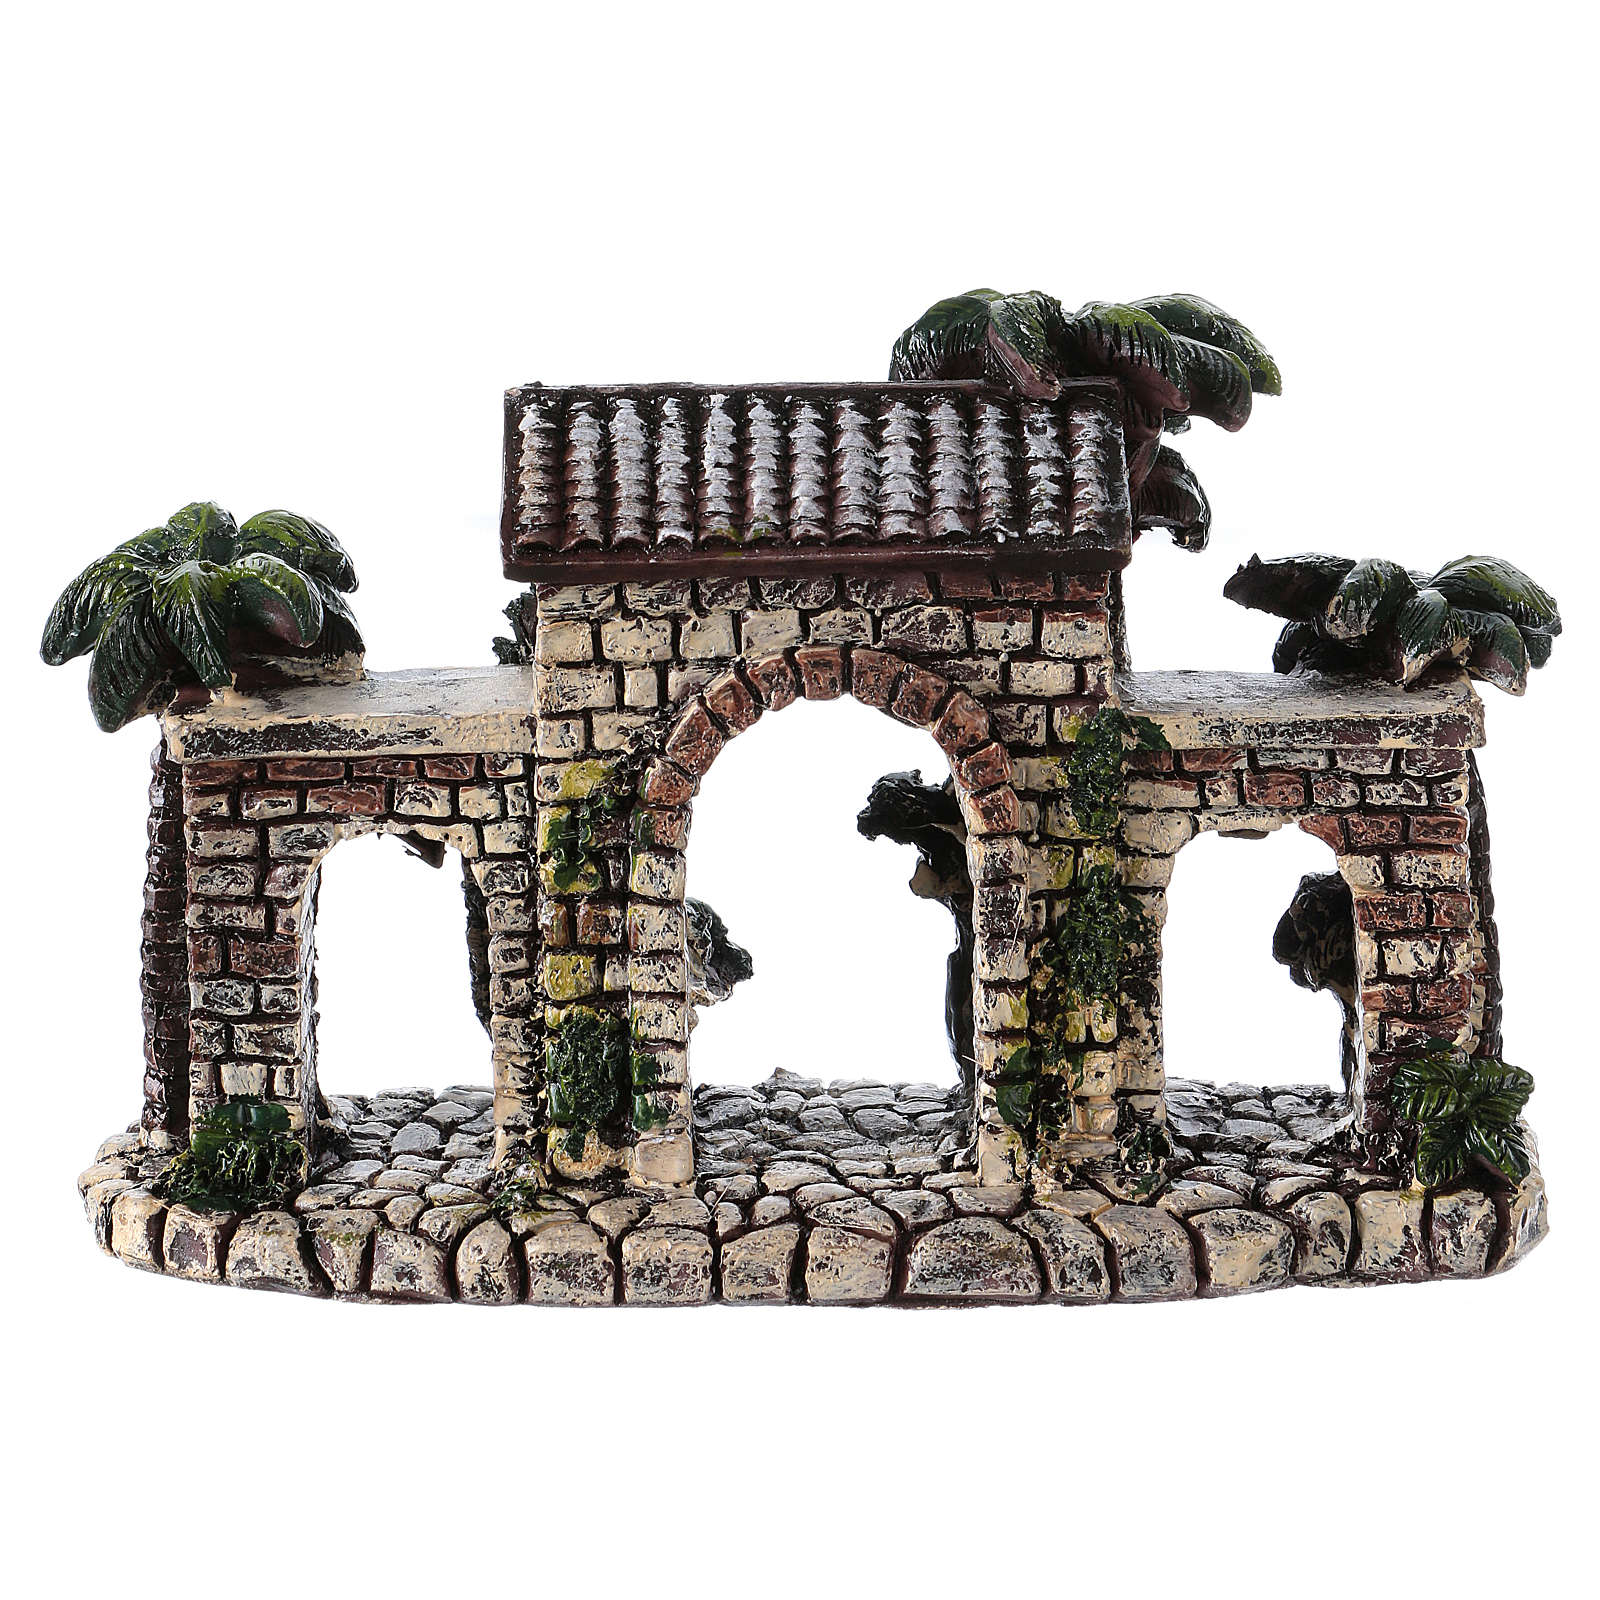 Wall with arches 5x15x5 cm in resin for Nativity Scene 4